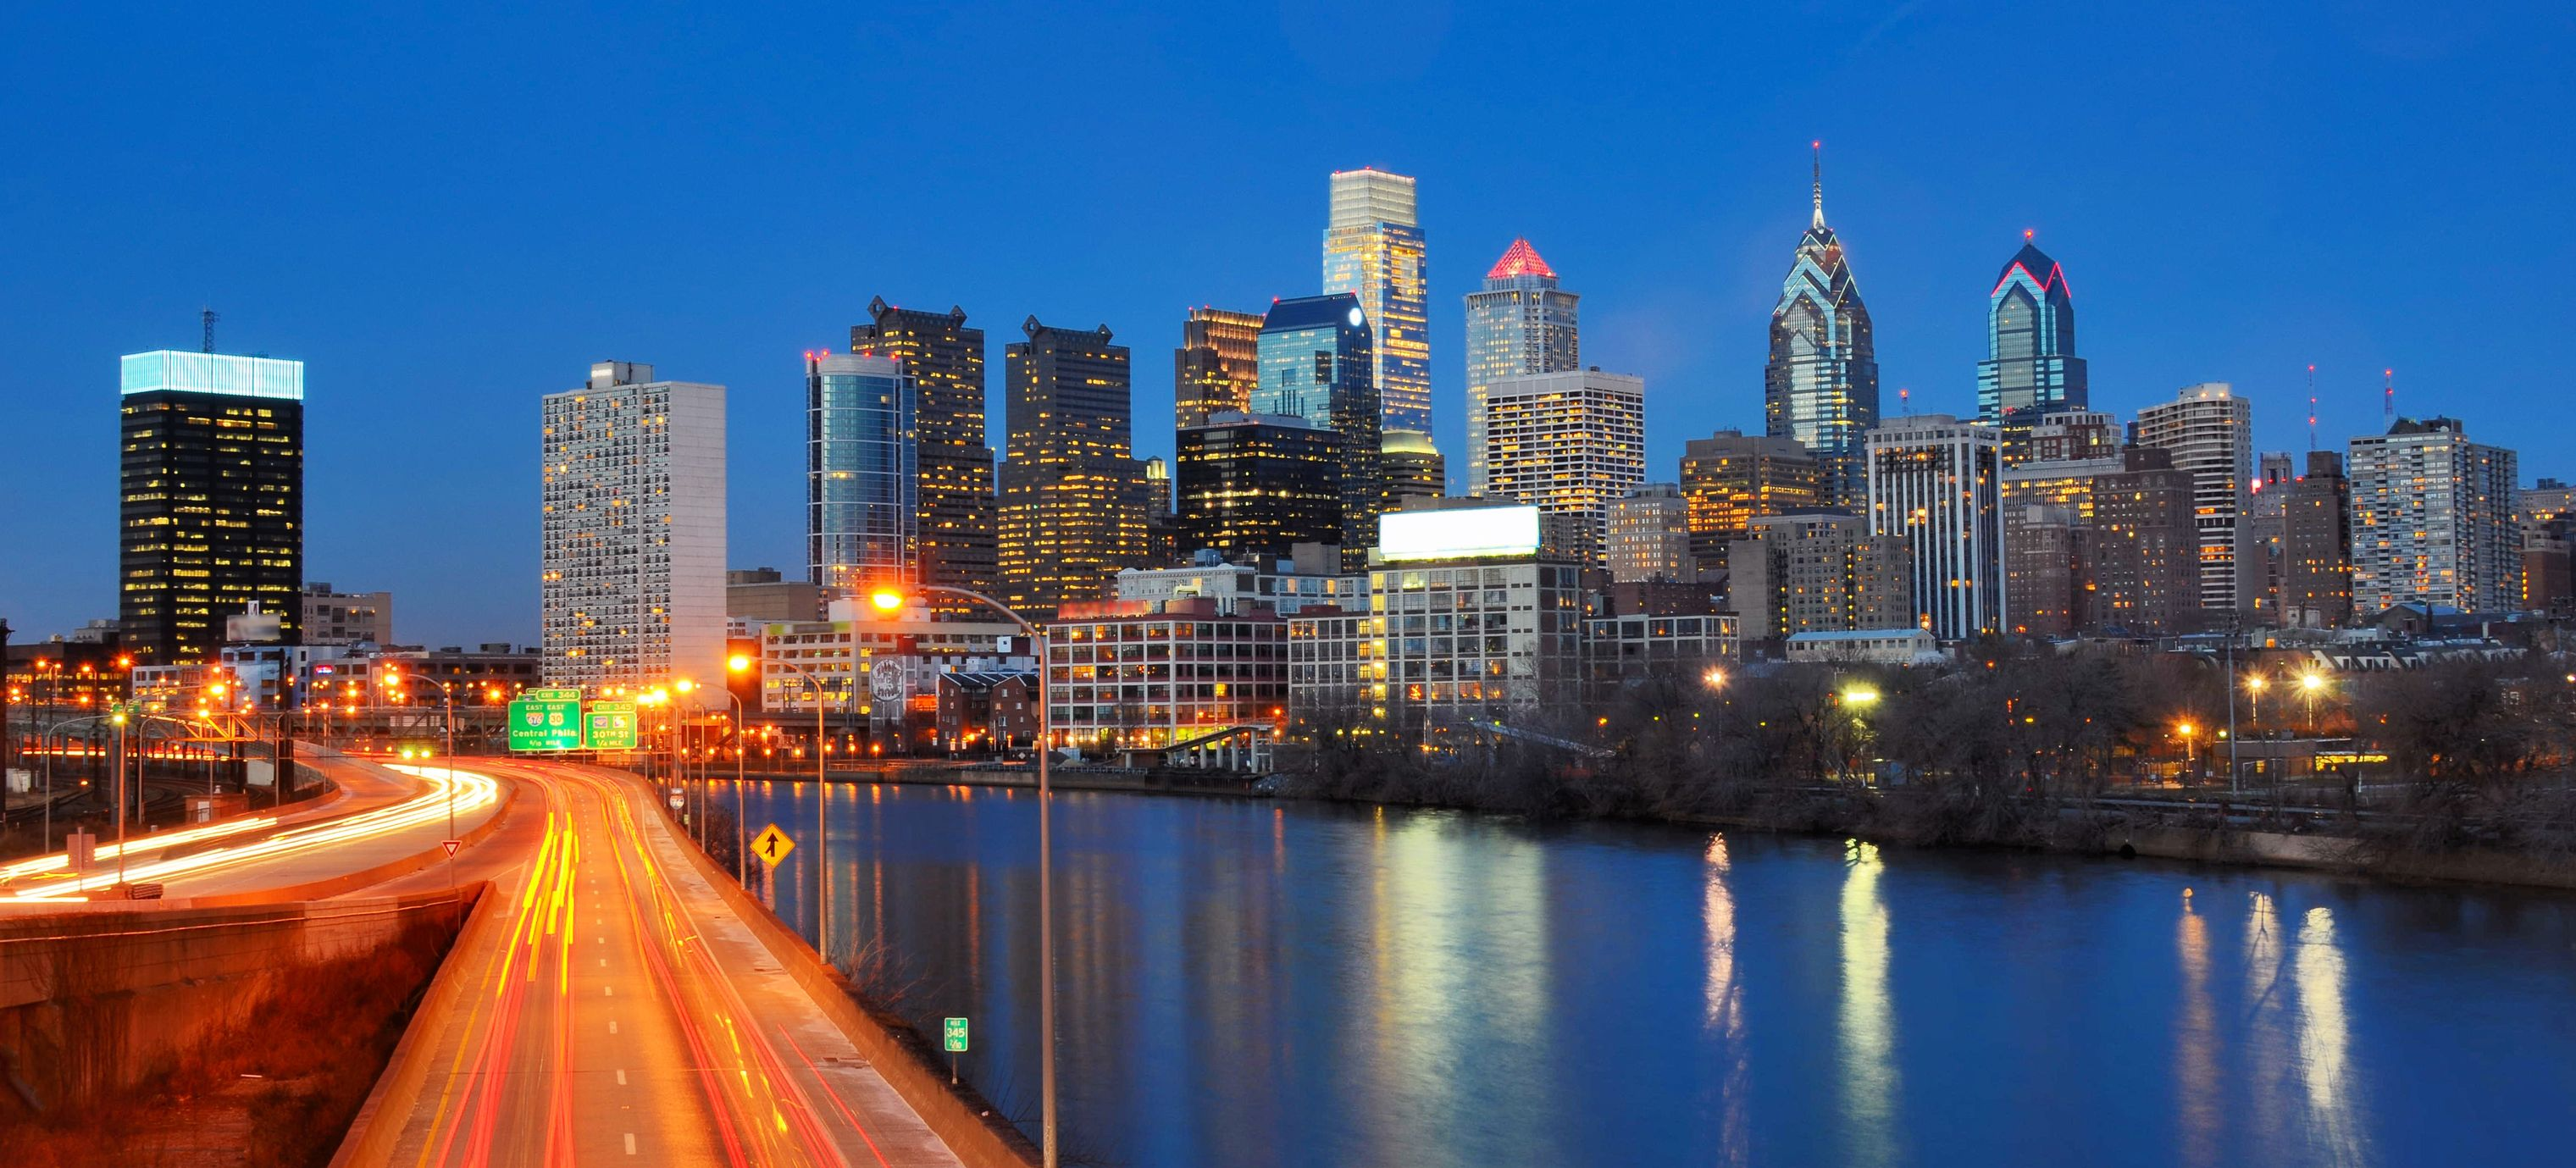 Philadelphia - USA Travel Destinations